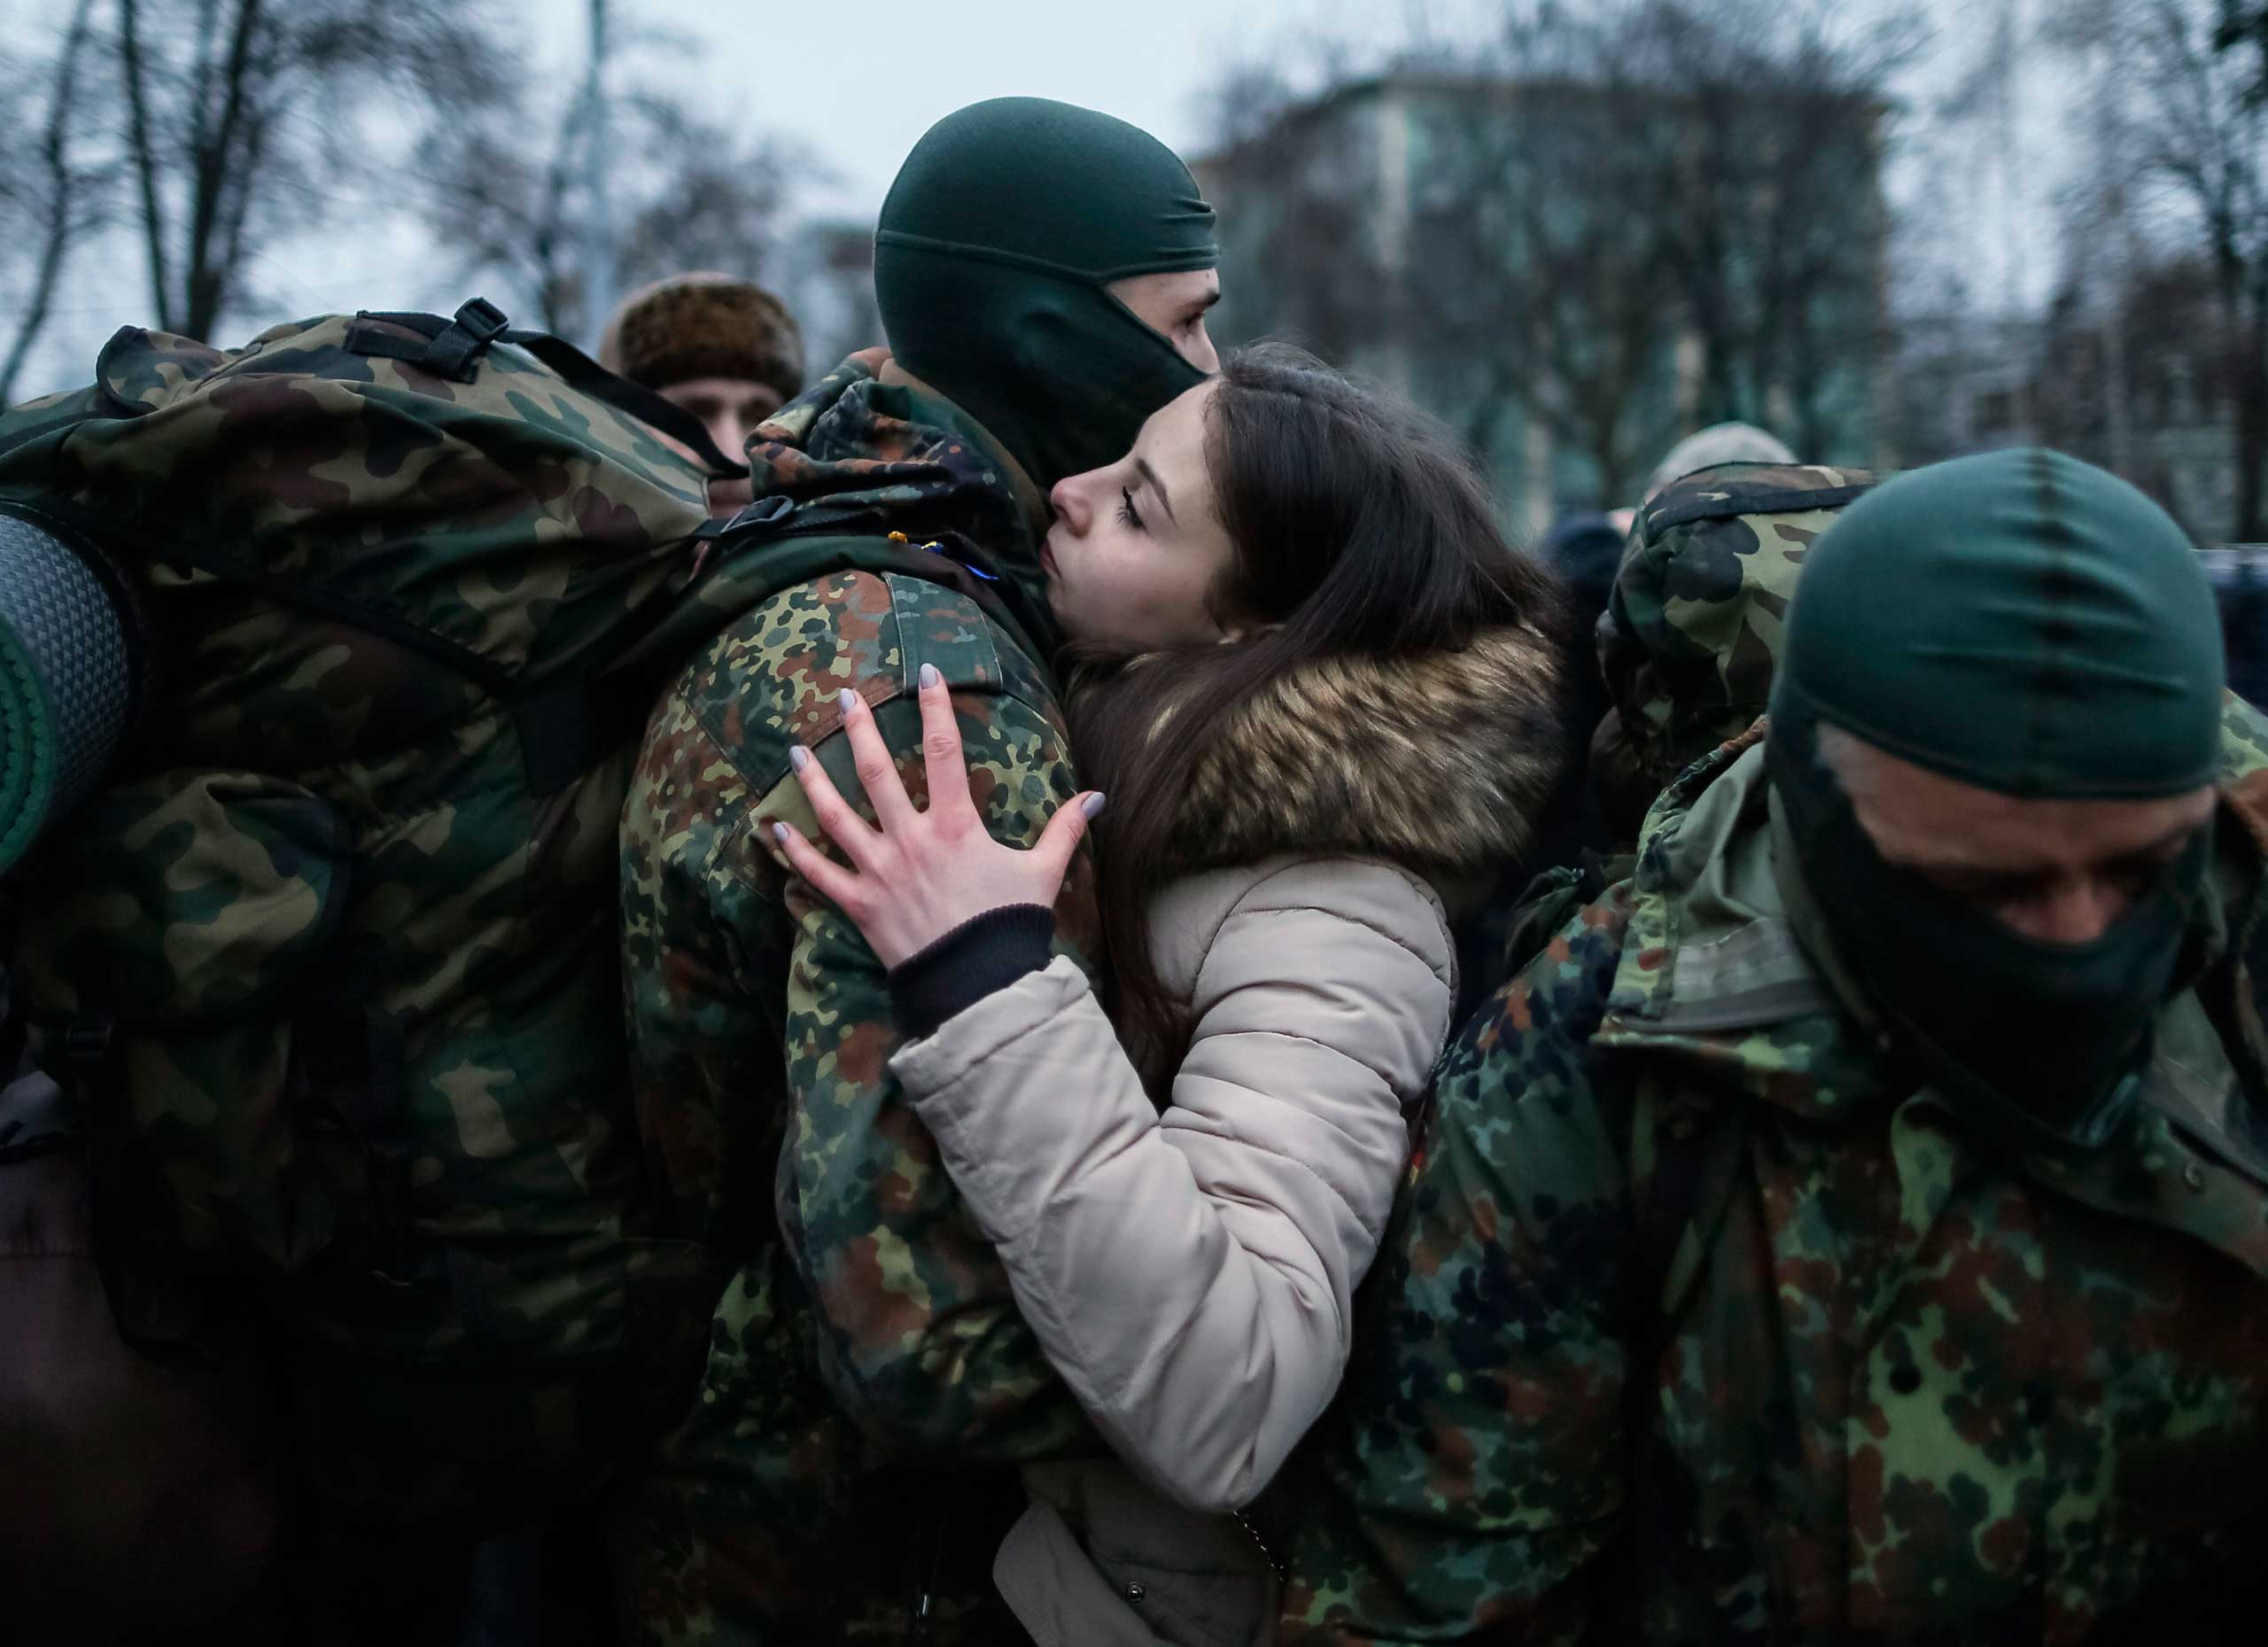 A new volunteer for the Ukrainian Interior Ministry's Azov battalion embraces his girlfriend before he and other volunteers depart to the frontlines in eastern Ukraine, in central Kiev on Jan. 17, 2015.